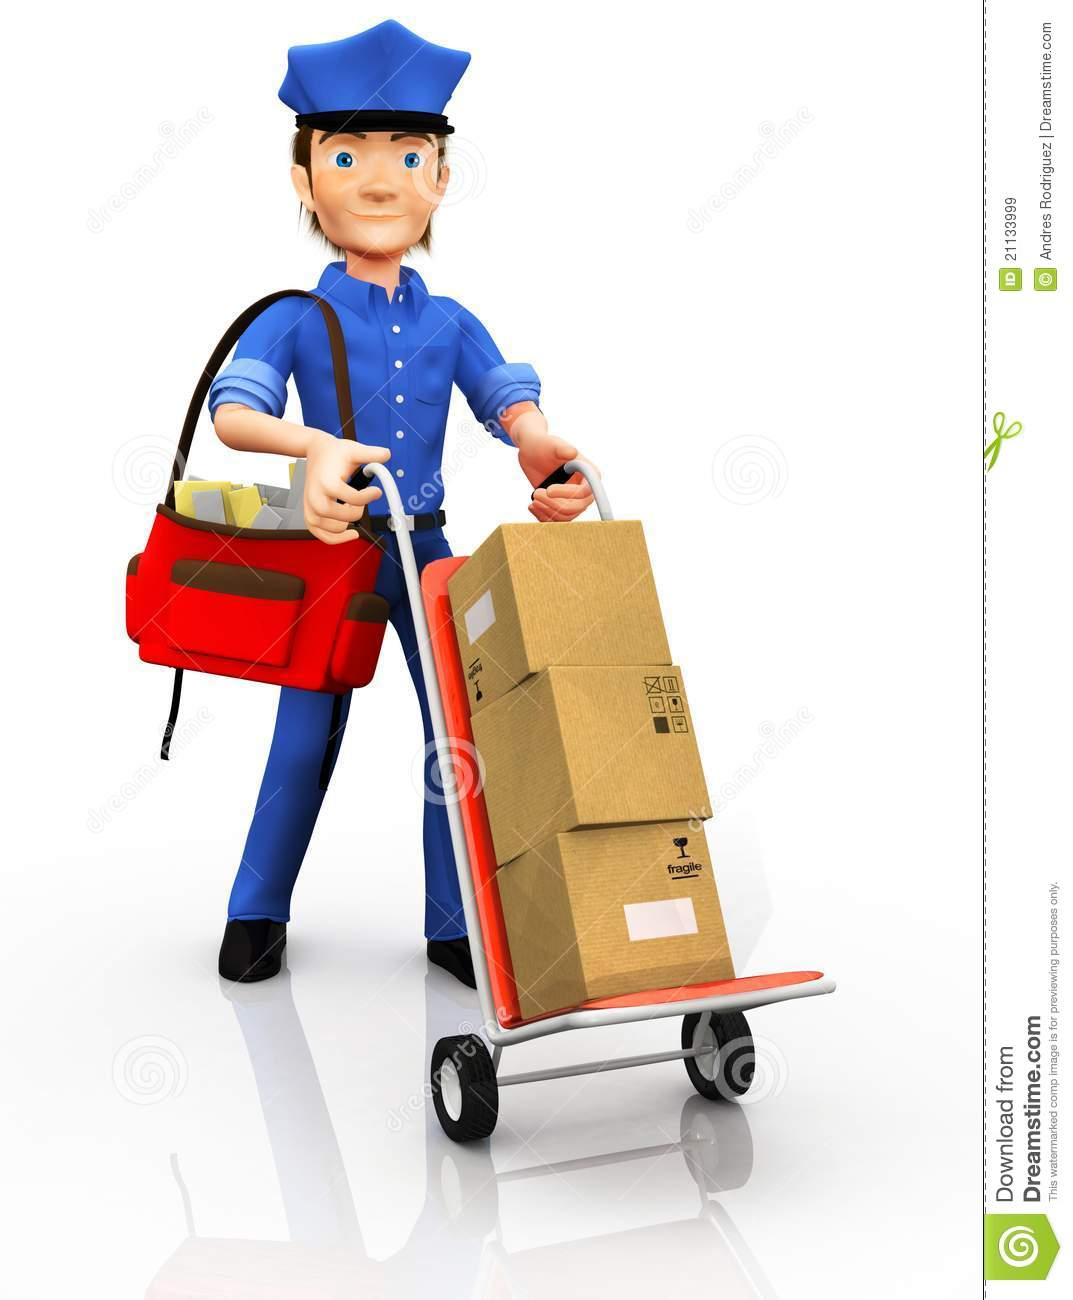 Royalty Free Stock Images 3d Mailman Image21133999 on chocolate car cartoon